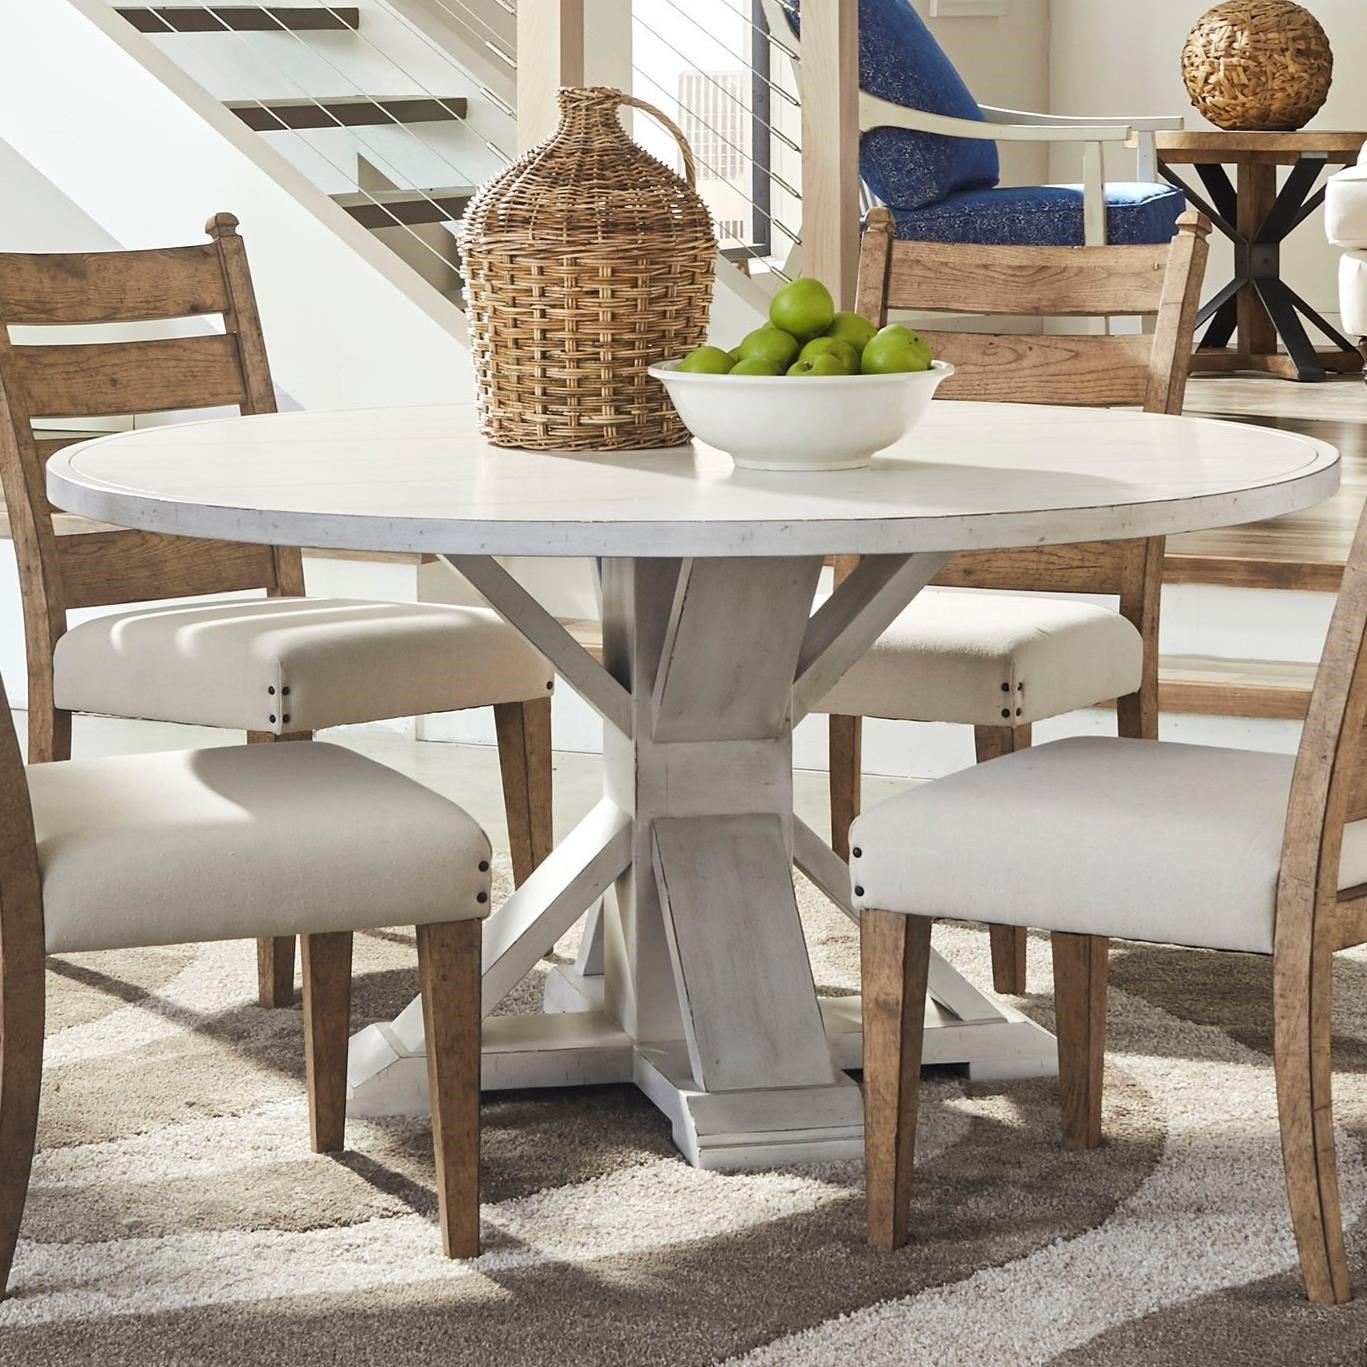 Coming Home Get Together Dining Table by Trisha Yearwood Home Collection by Klaussner at Johnny Janosik